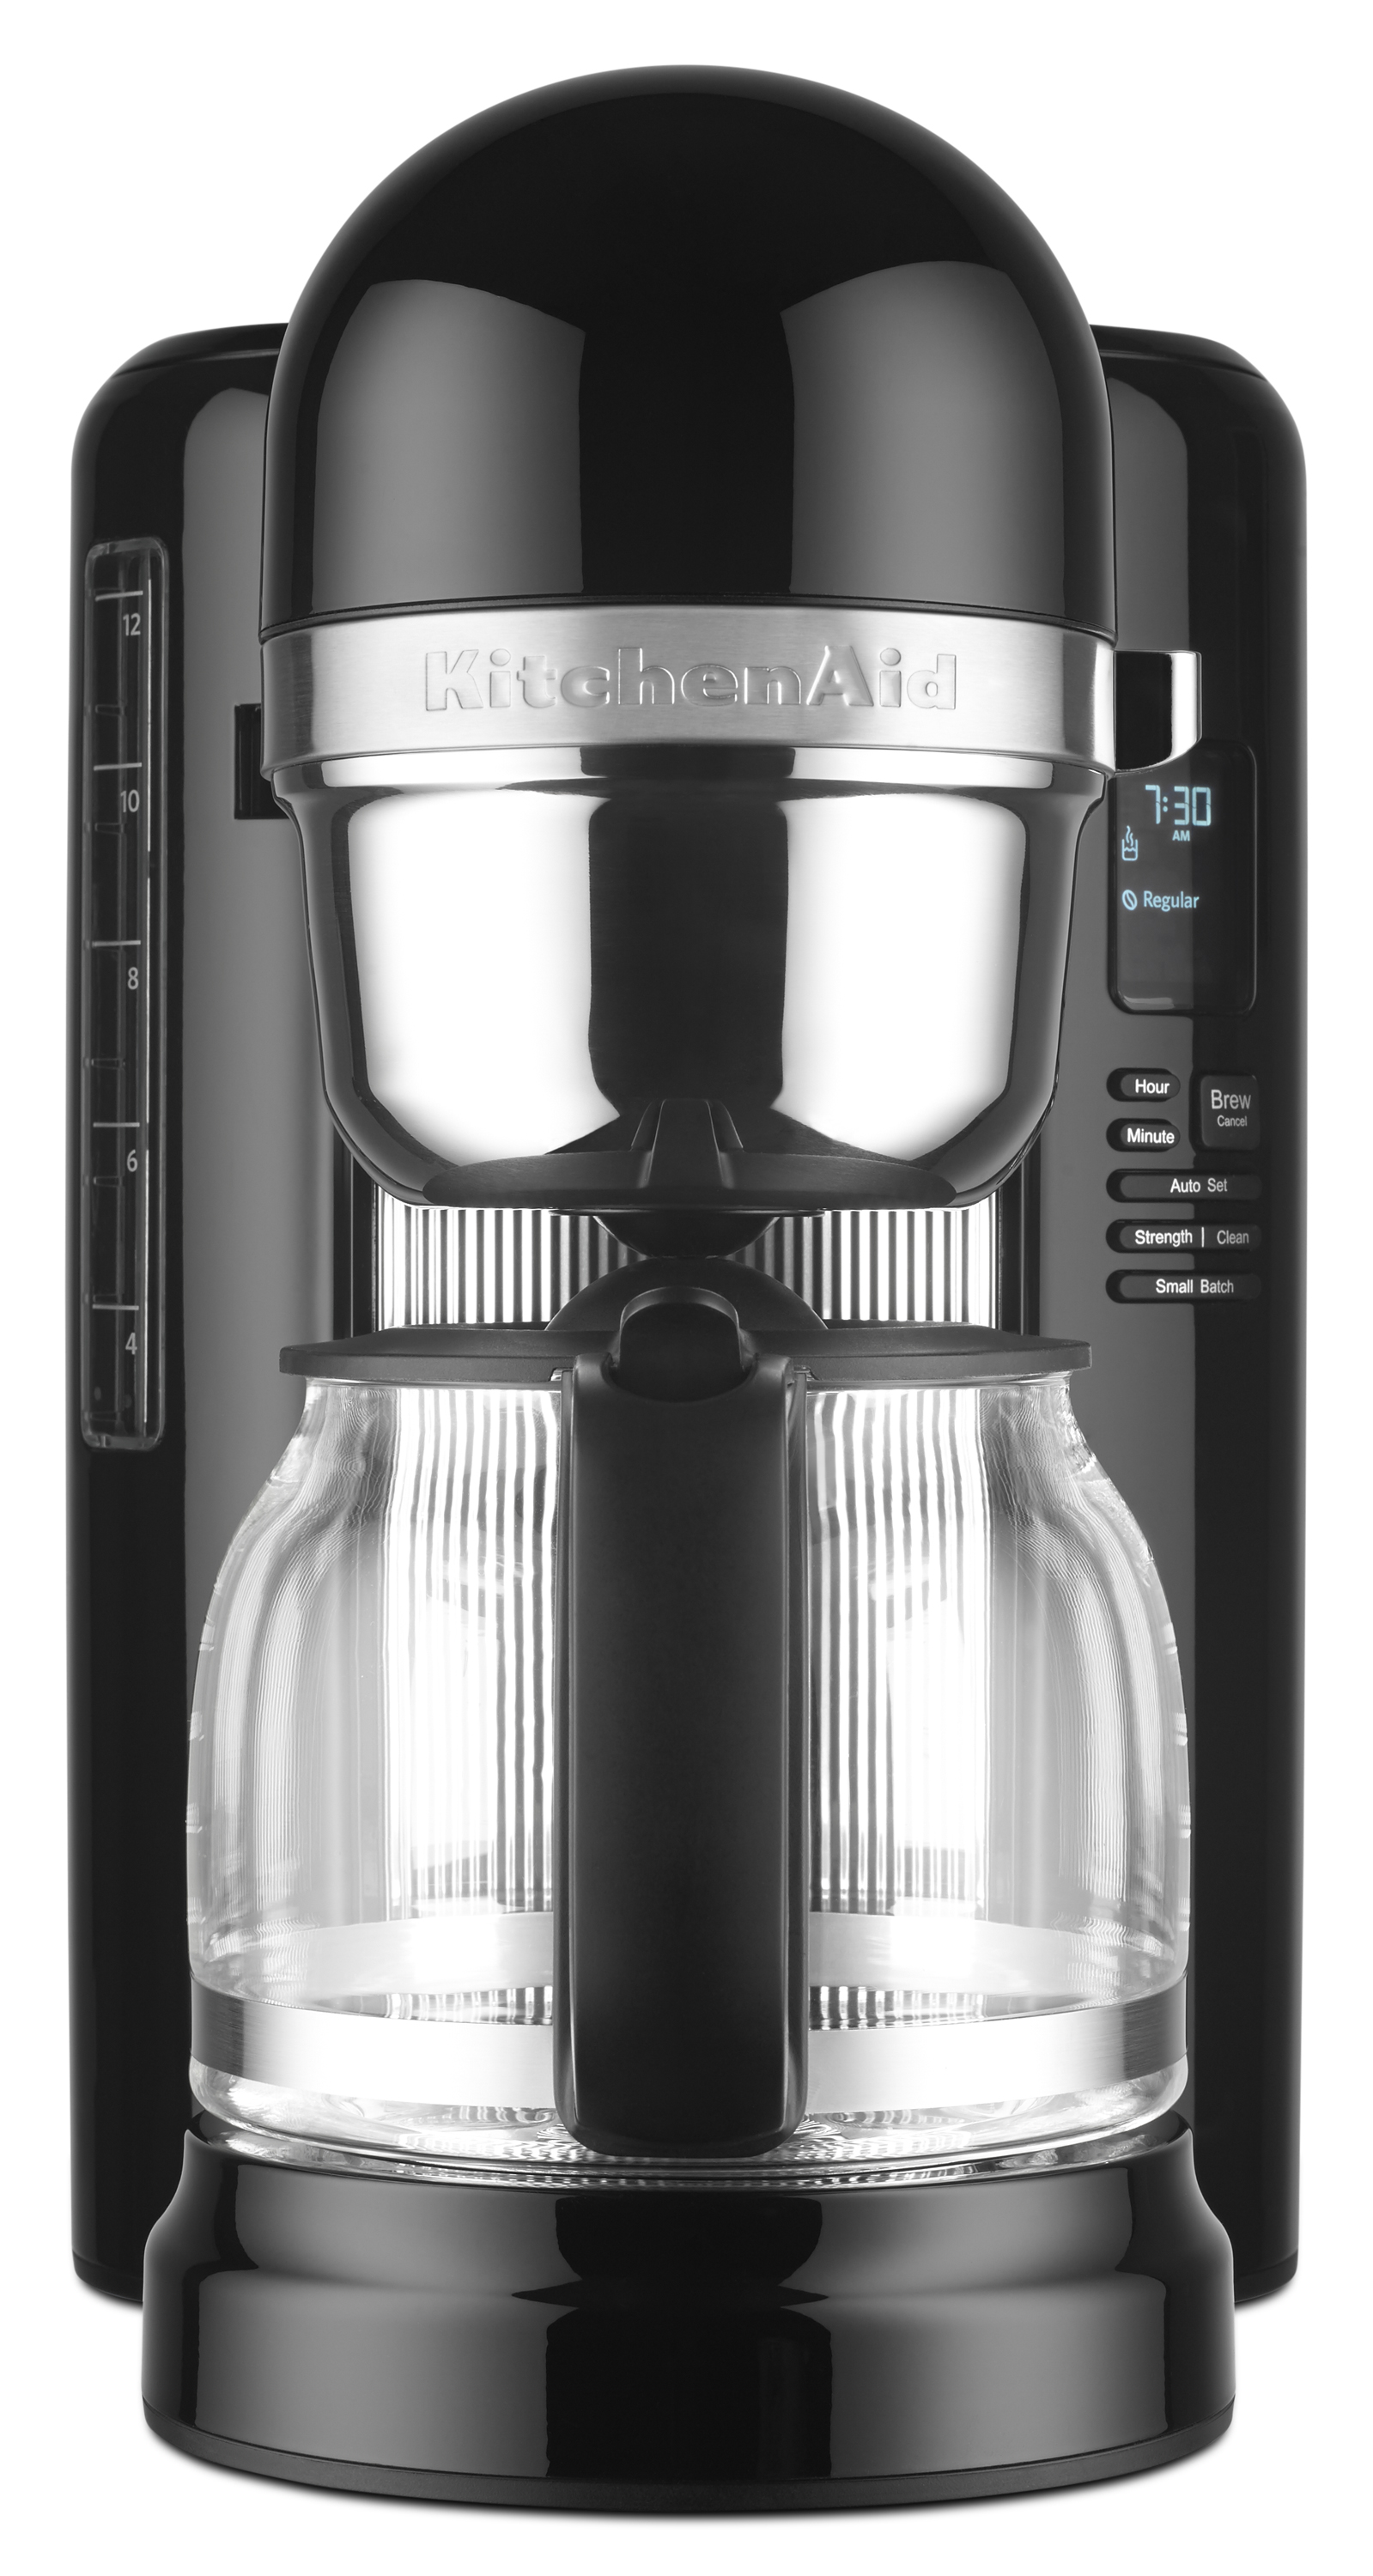 How To Clean Kitchenaid Coffee Maker Coffee Drinker